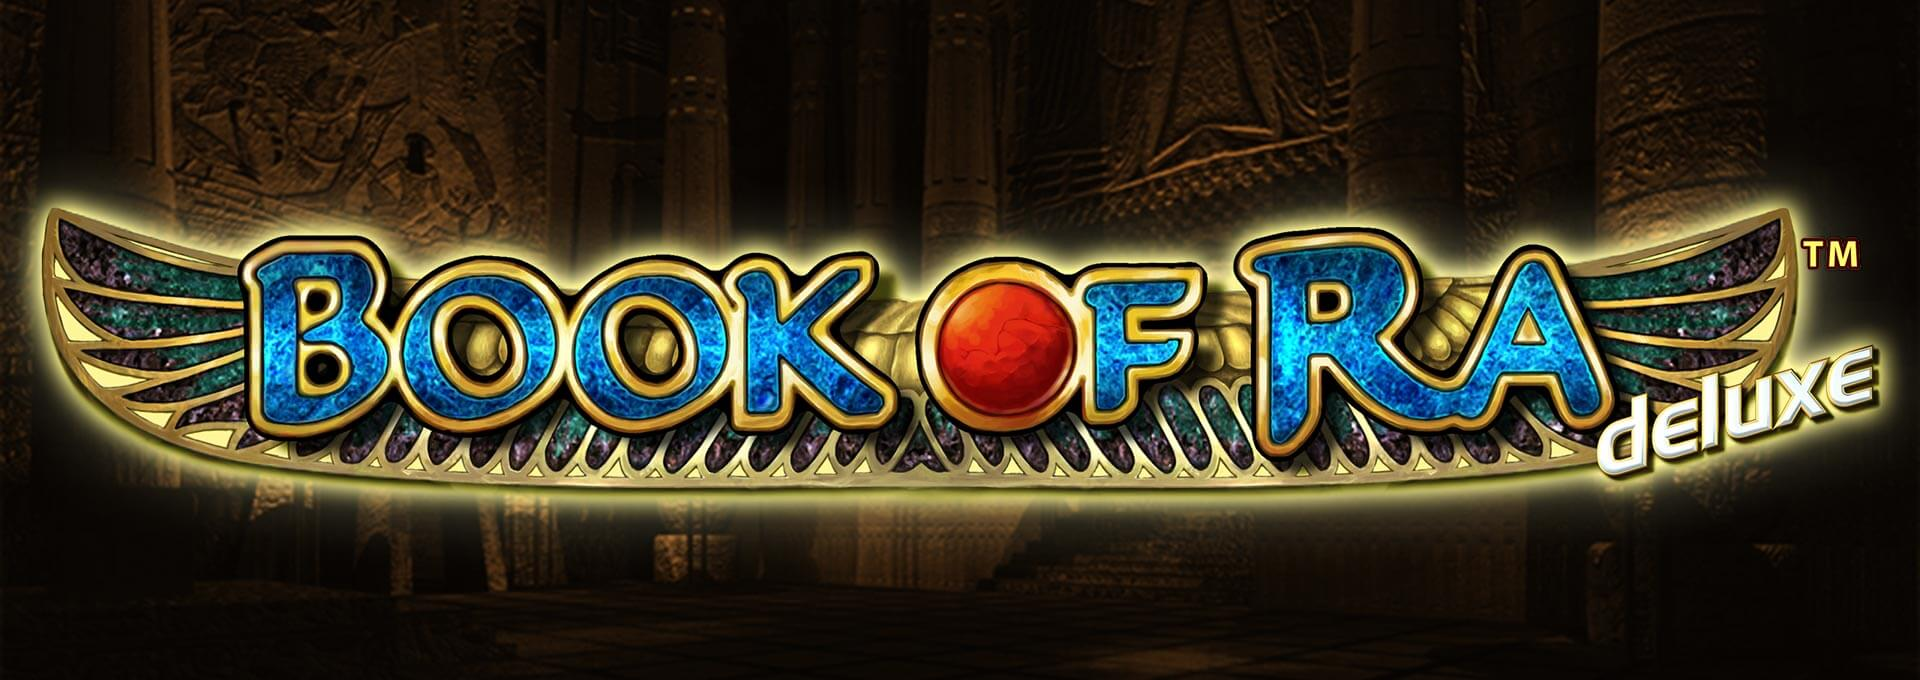 free online mobile casino book of ra erklärung